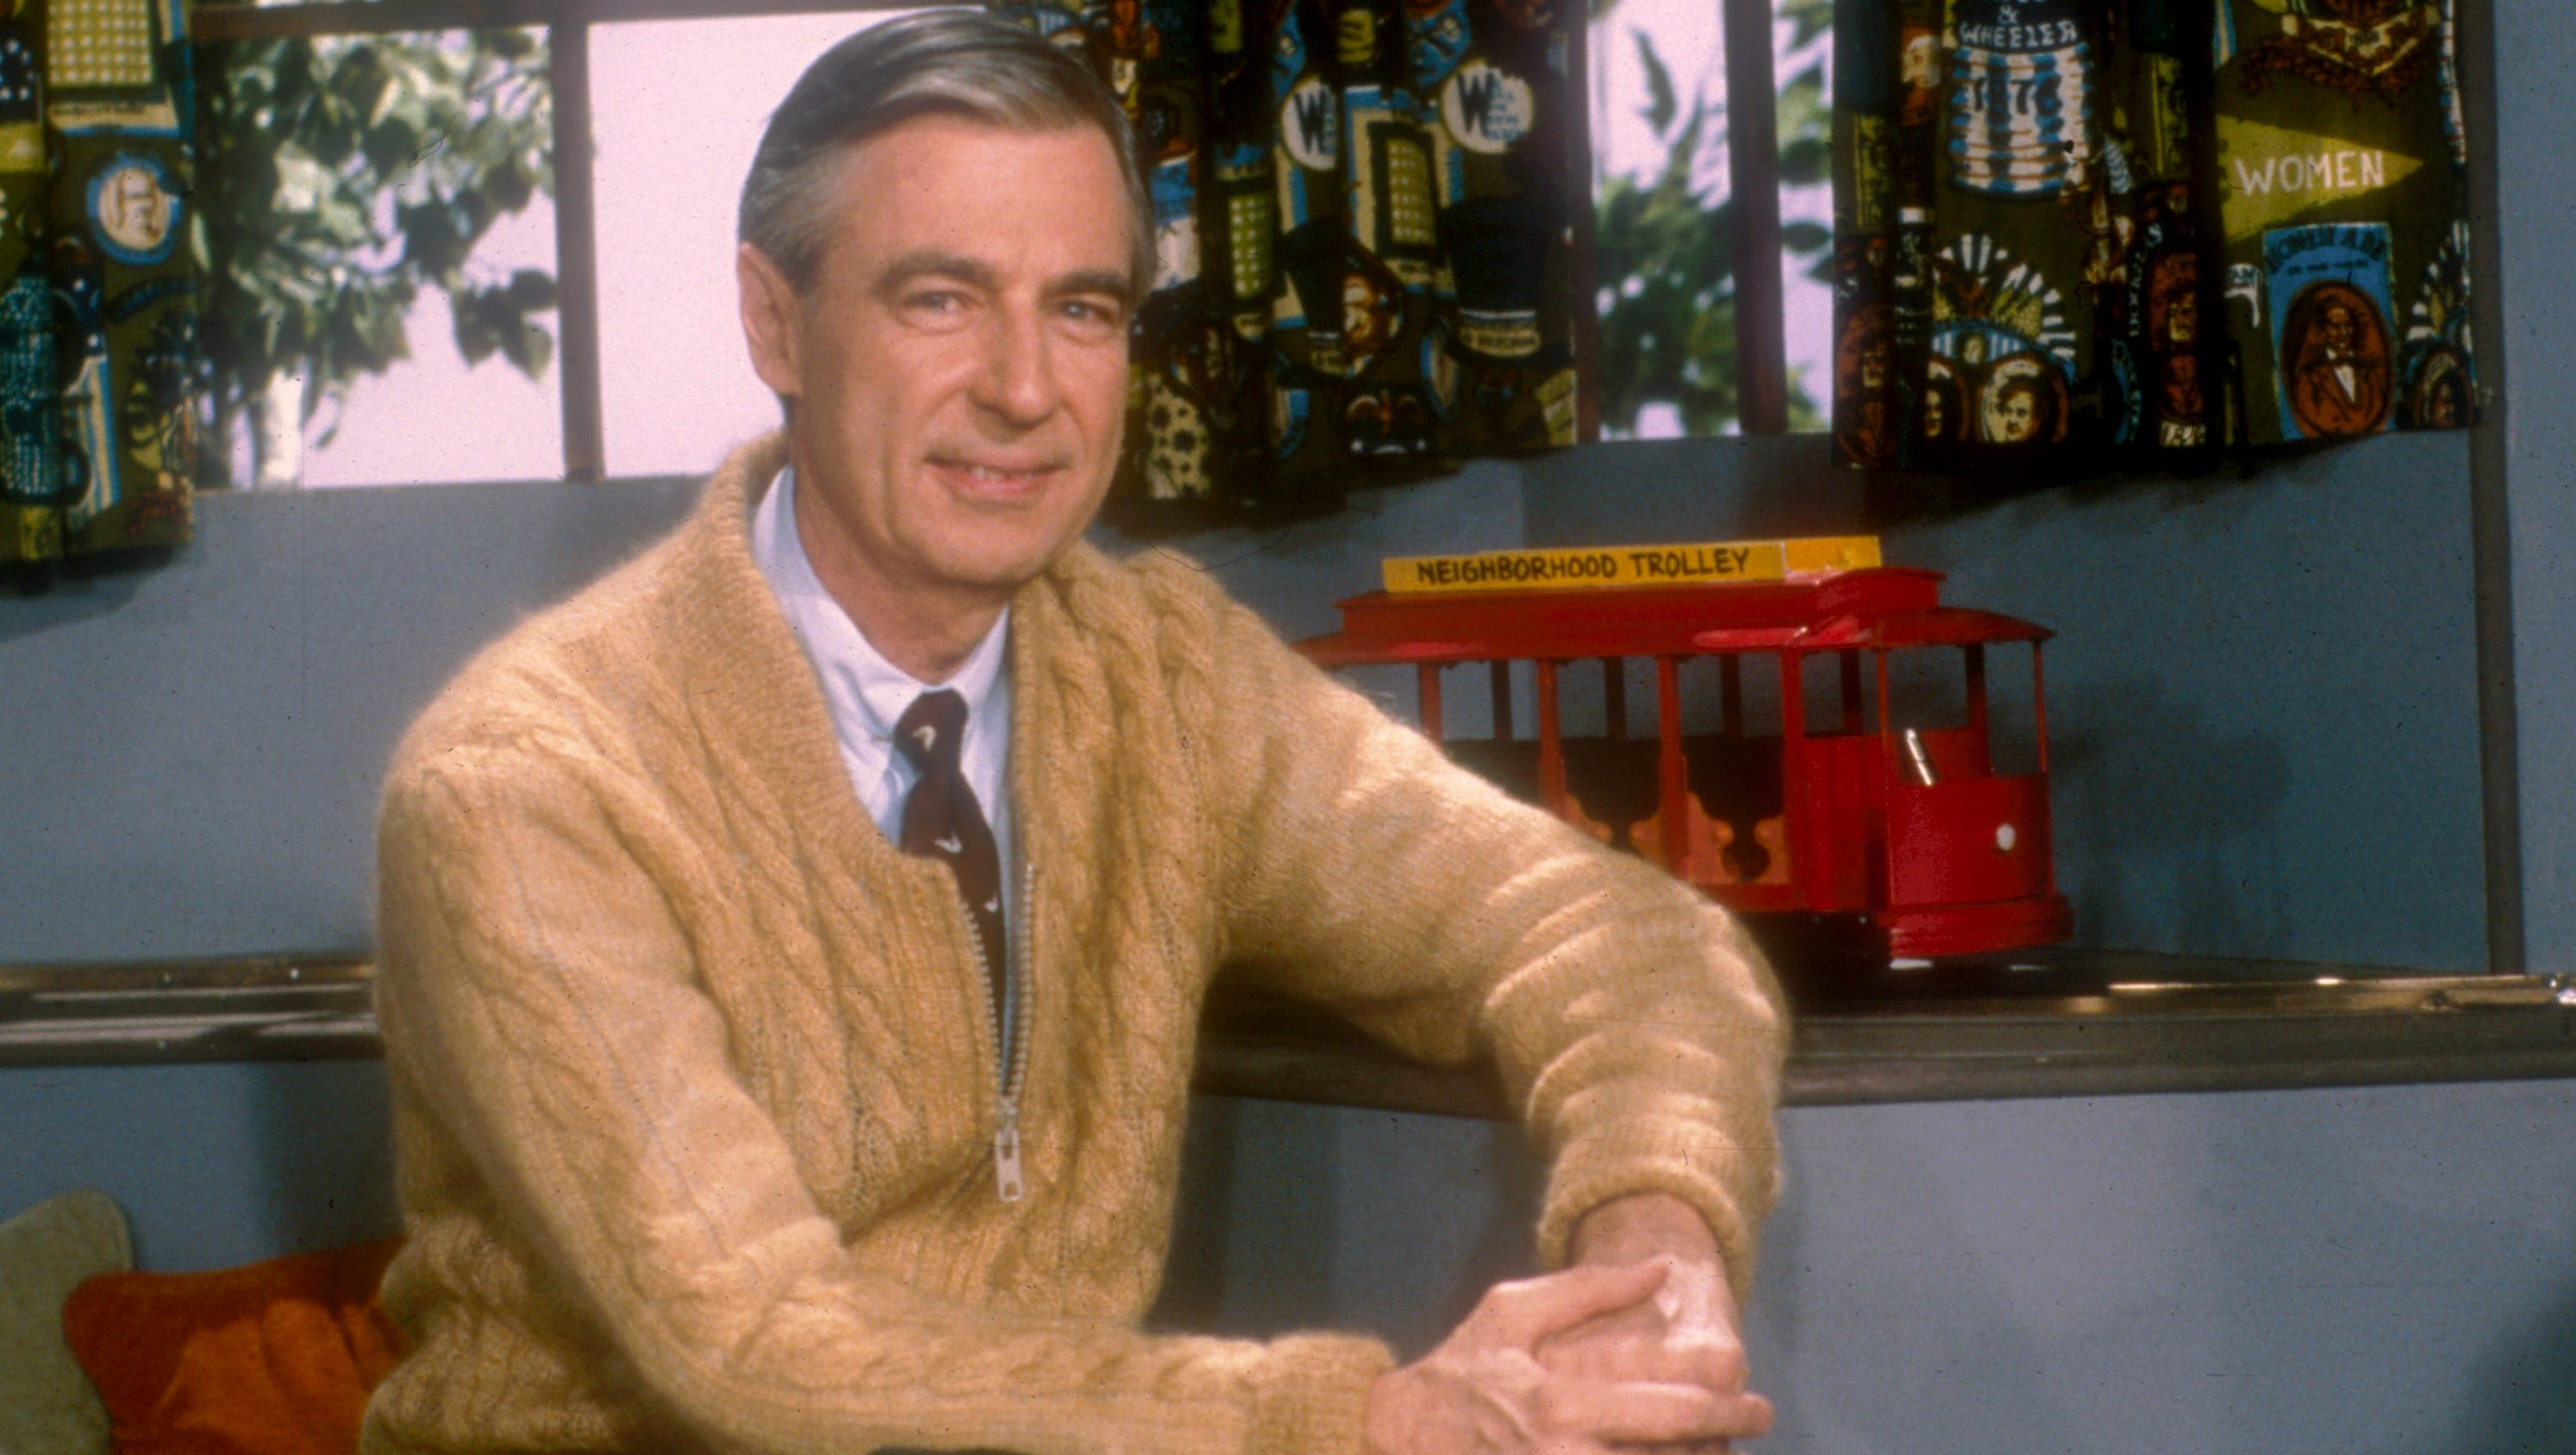 5 Ways To Celebrate Mister Rogers Neighborhood On Its 50th Anniversary